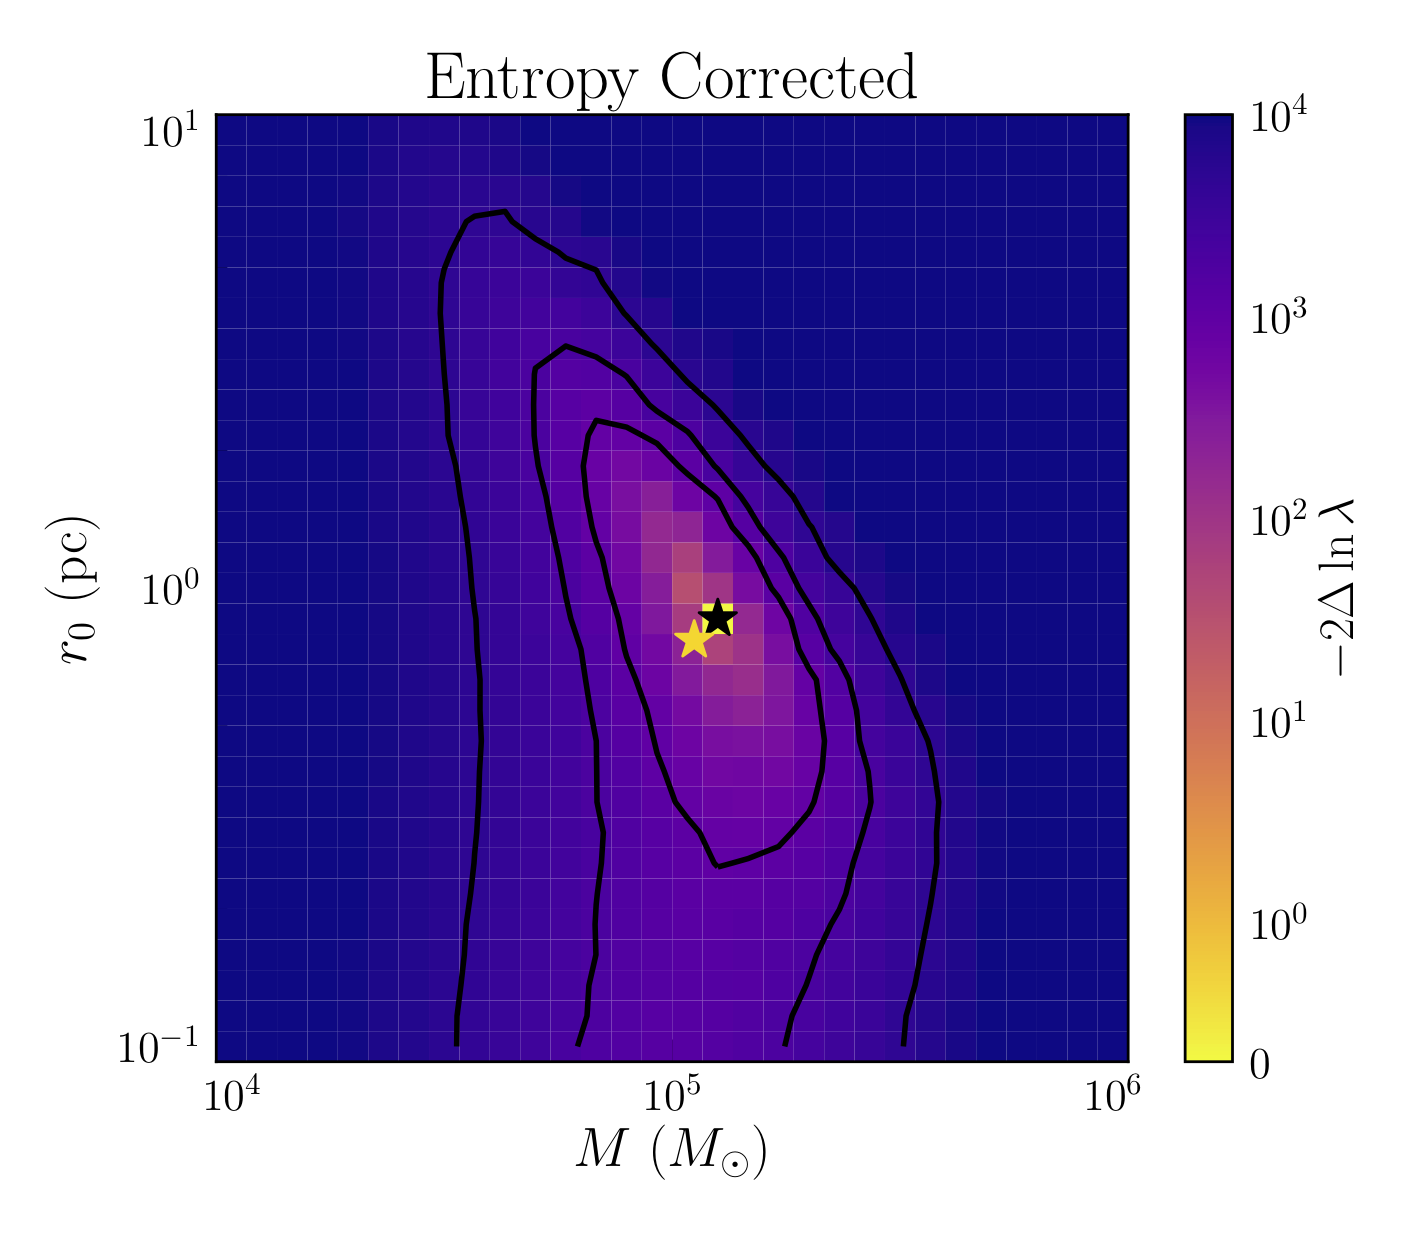 Best-fit mass and King profile radius for simulated M4 globular cluster, after cutting stars with large velocity errors and correcting for entropy-injection. Correct answer is shown with the gold star, best-fit is the black star.